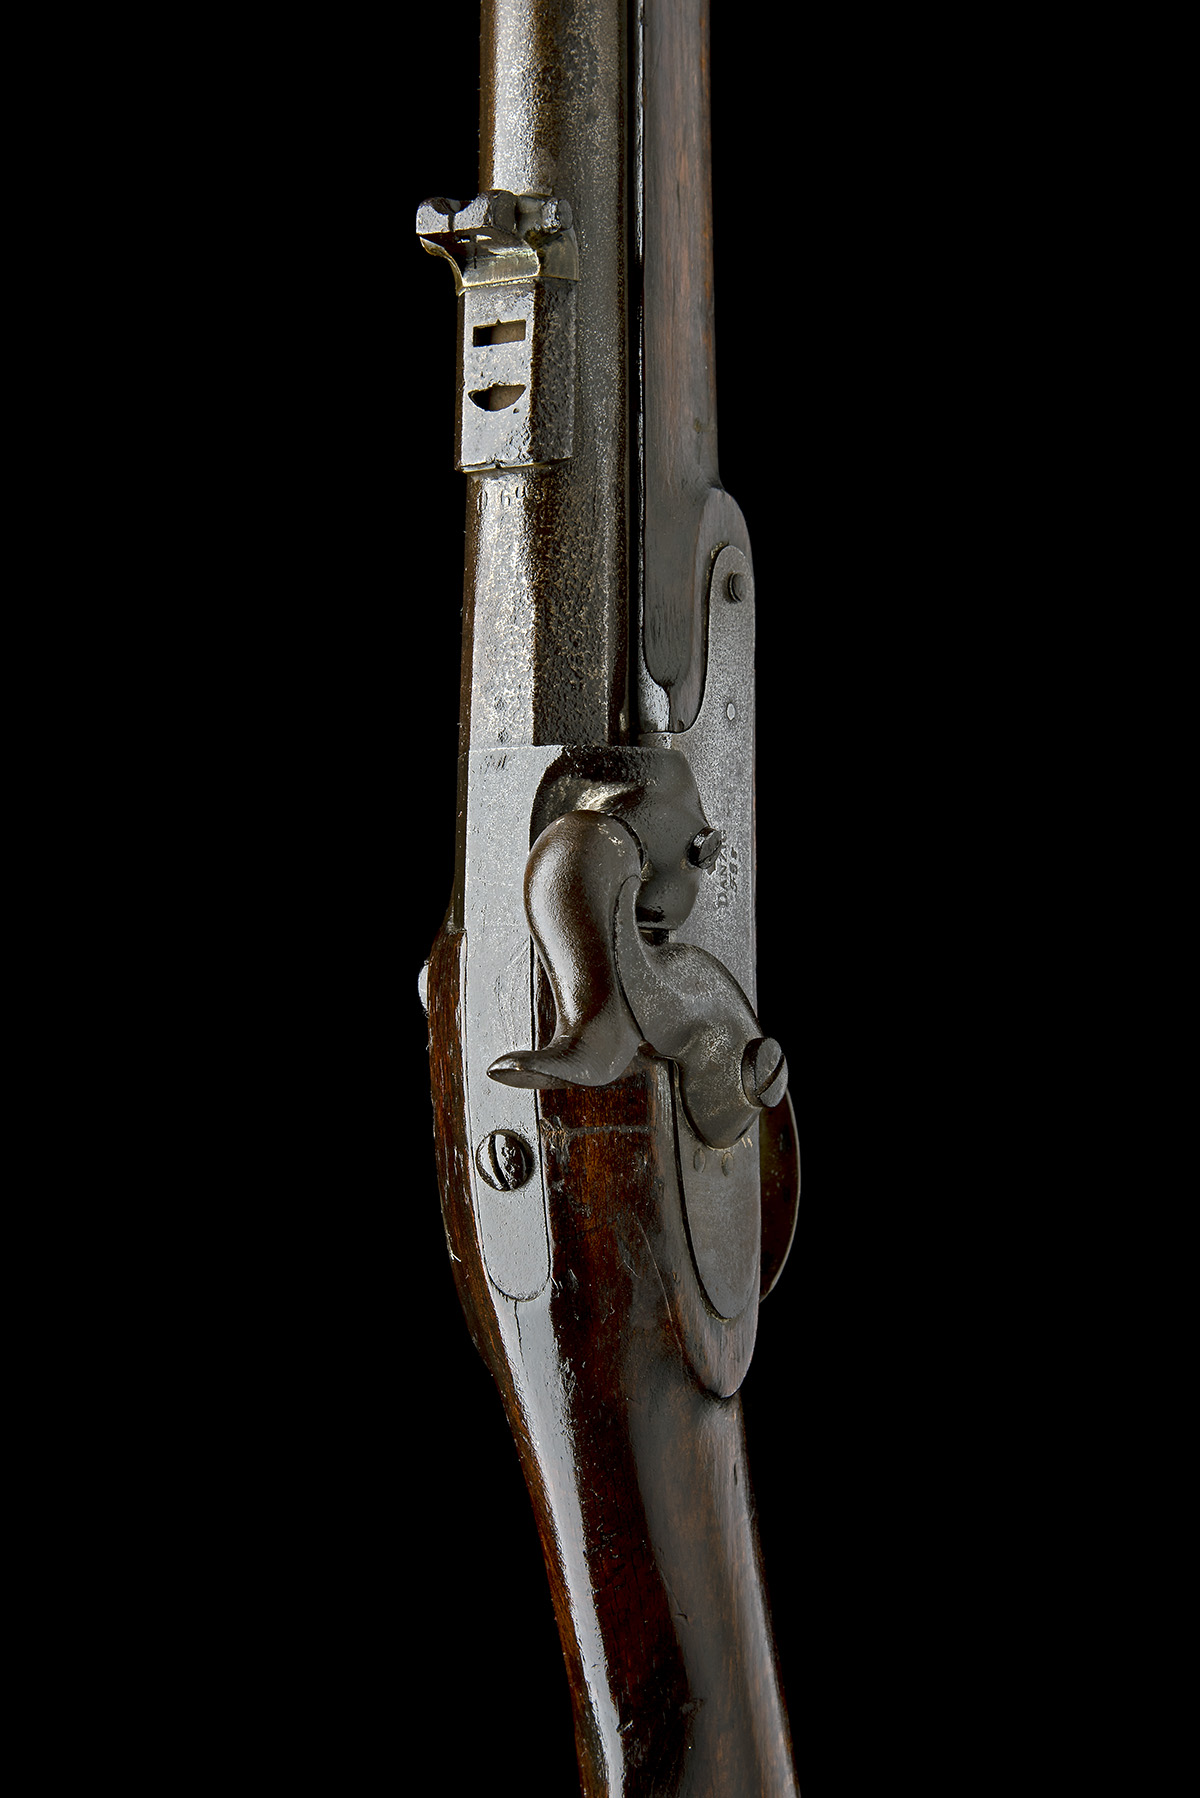 DANZIG ARSENAL, GERMANY A .695 PERCUSSION RIFLED MUSKET, MODEL 'POTSDAM STYLE', serial no. Z843, - Image 7 of 8